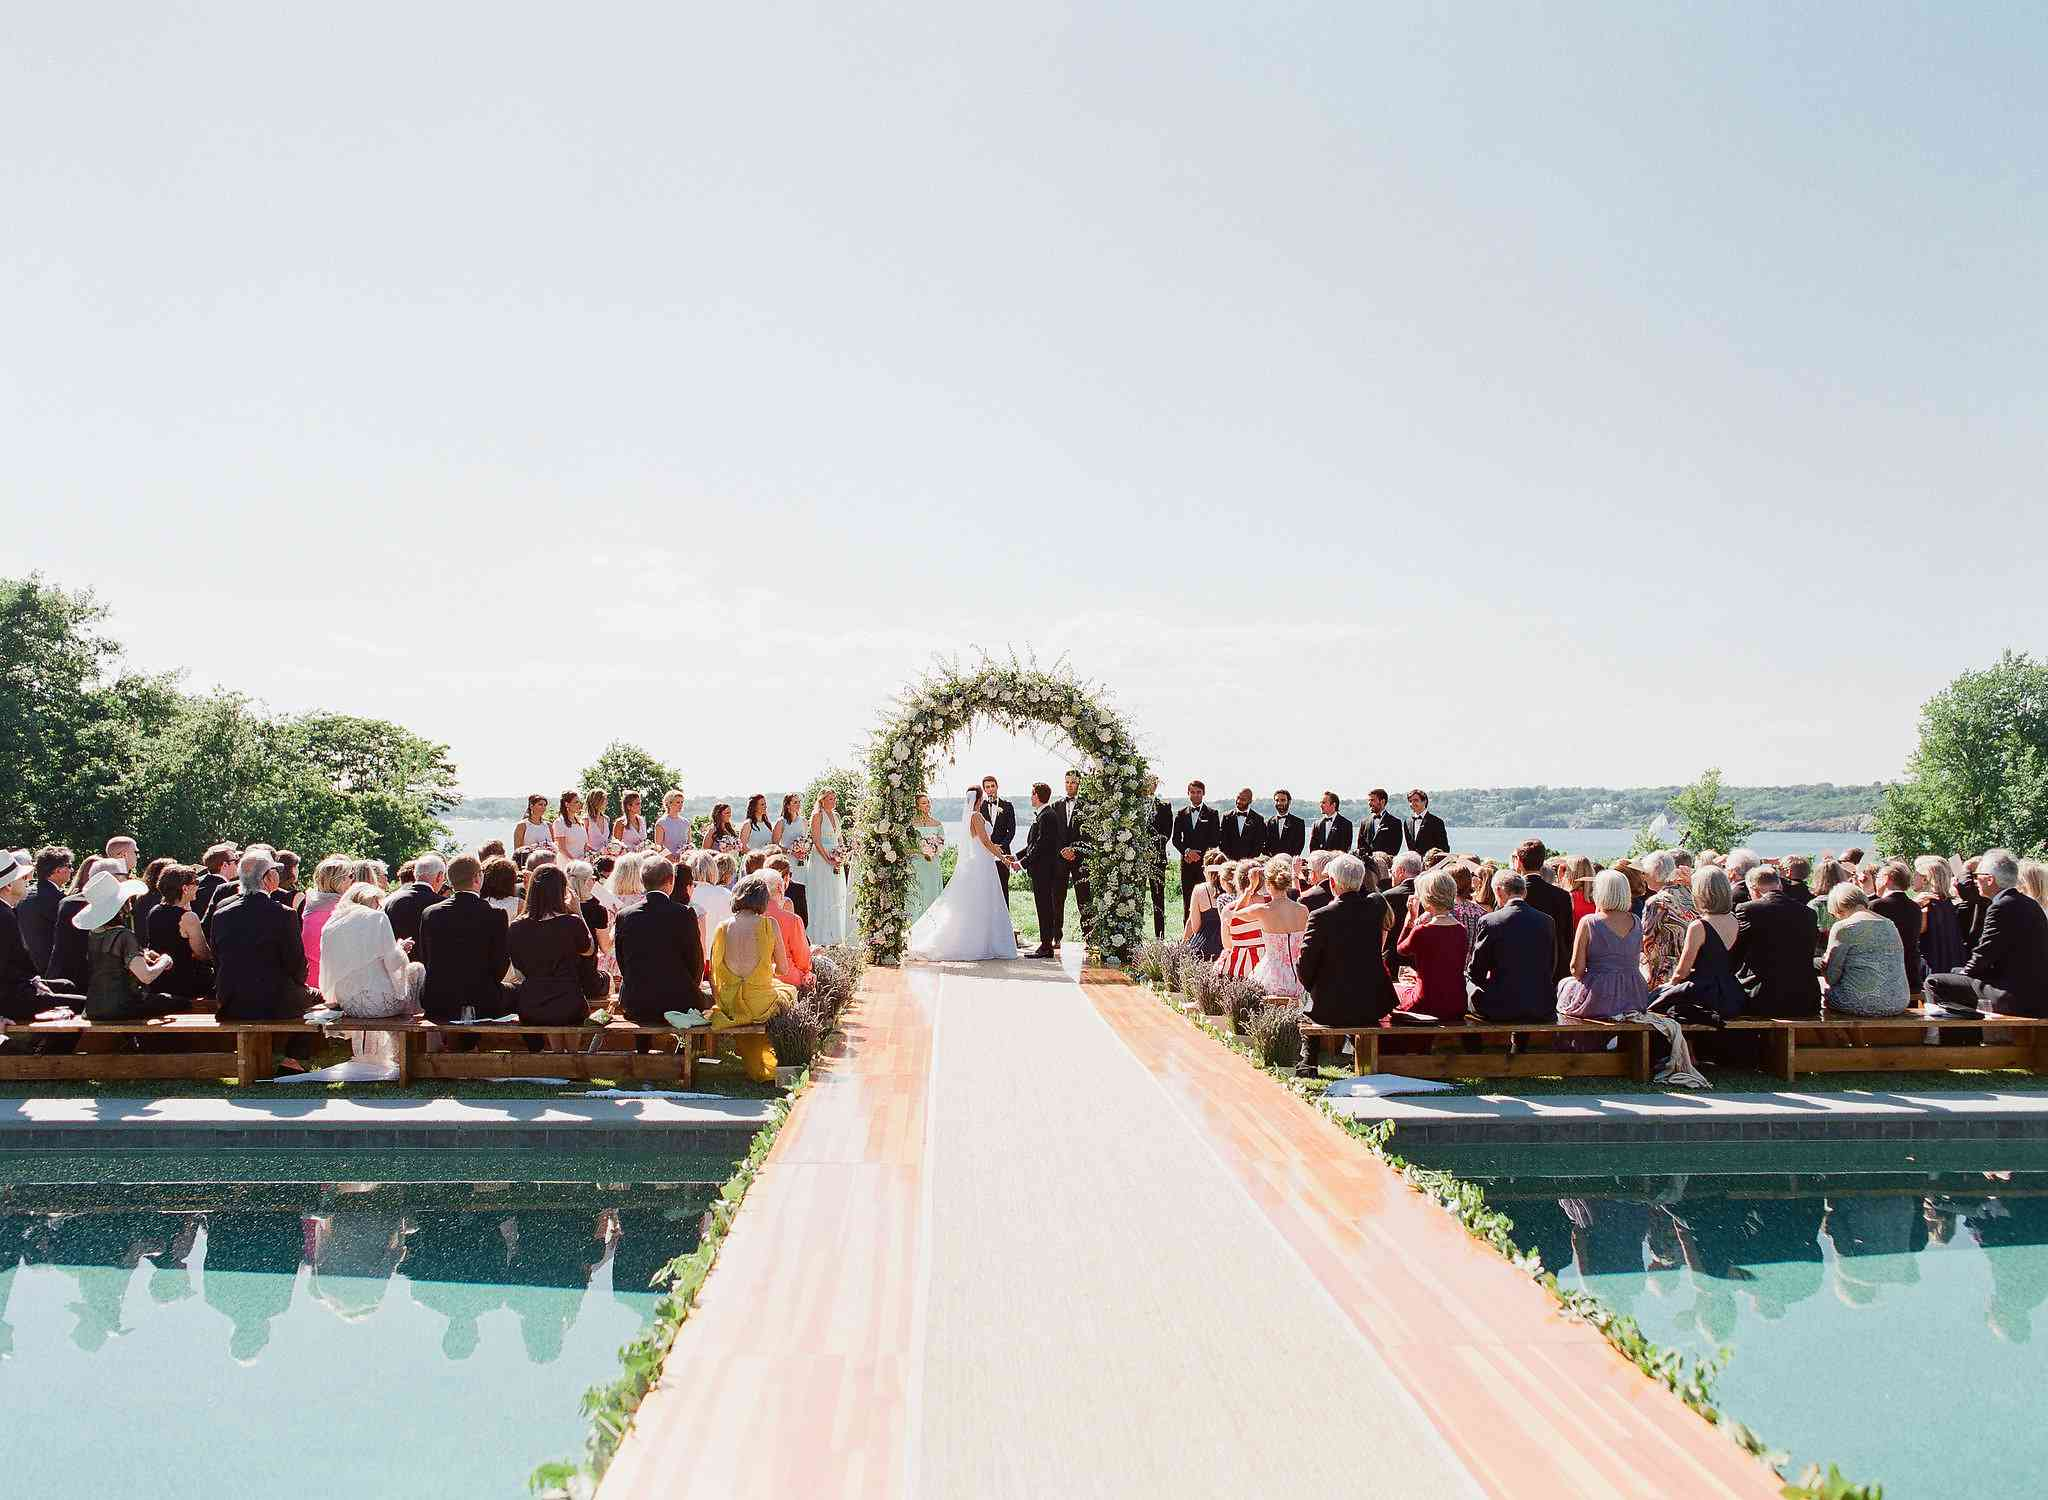 Wedding aisle as a bride crossing over a pool